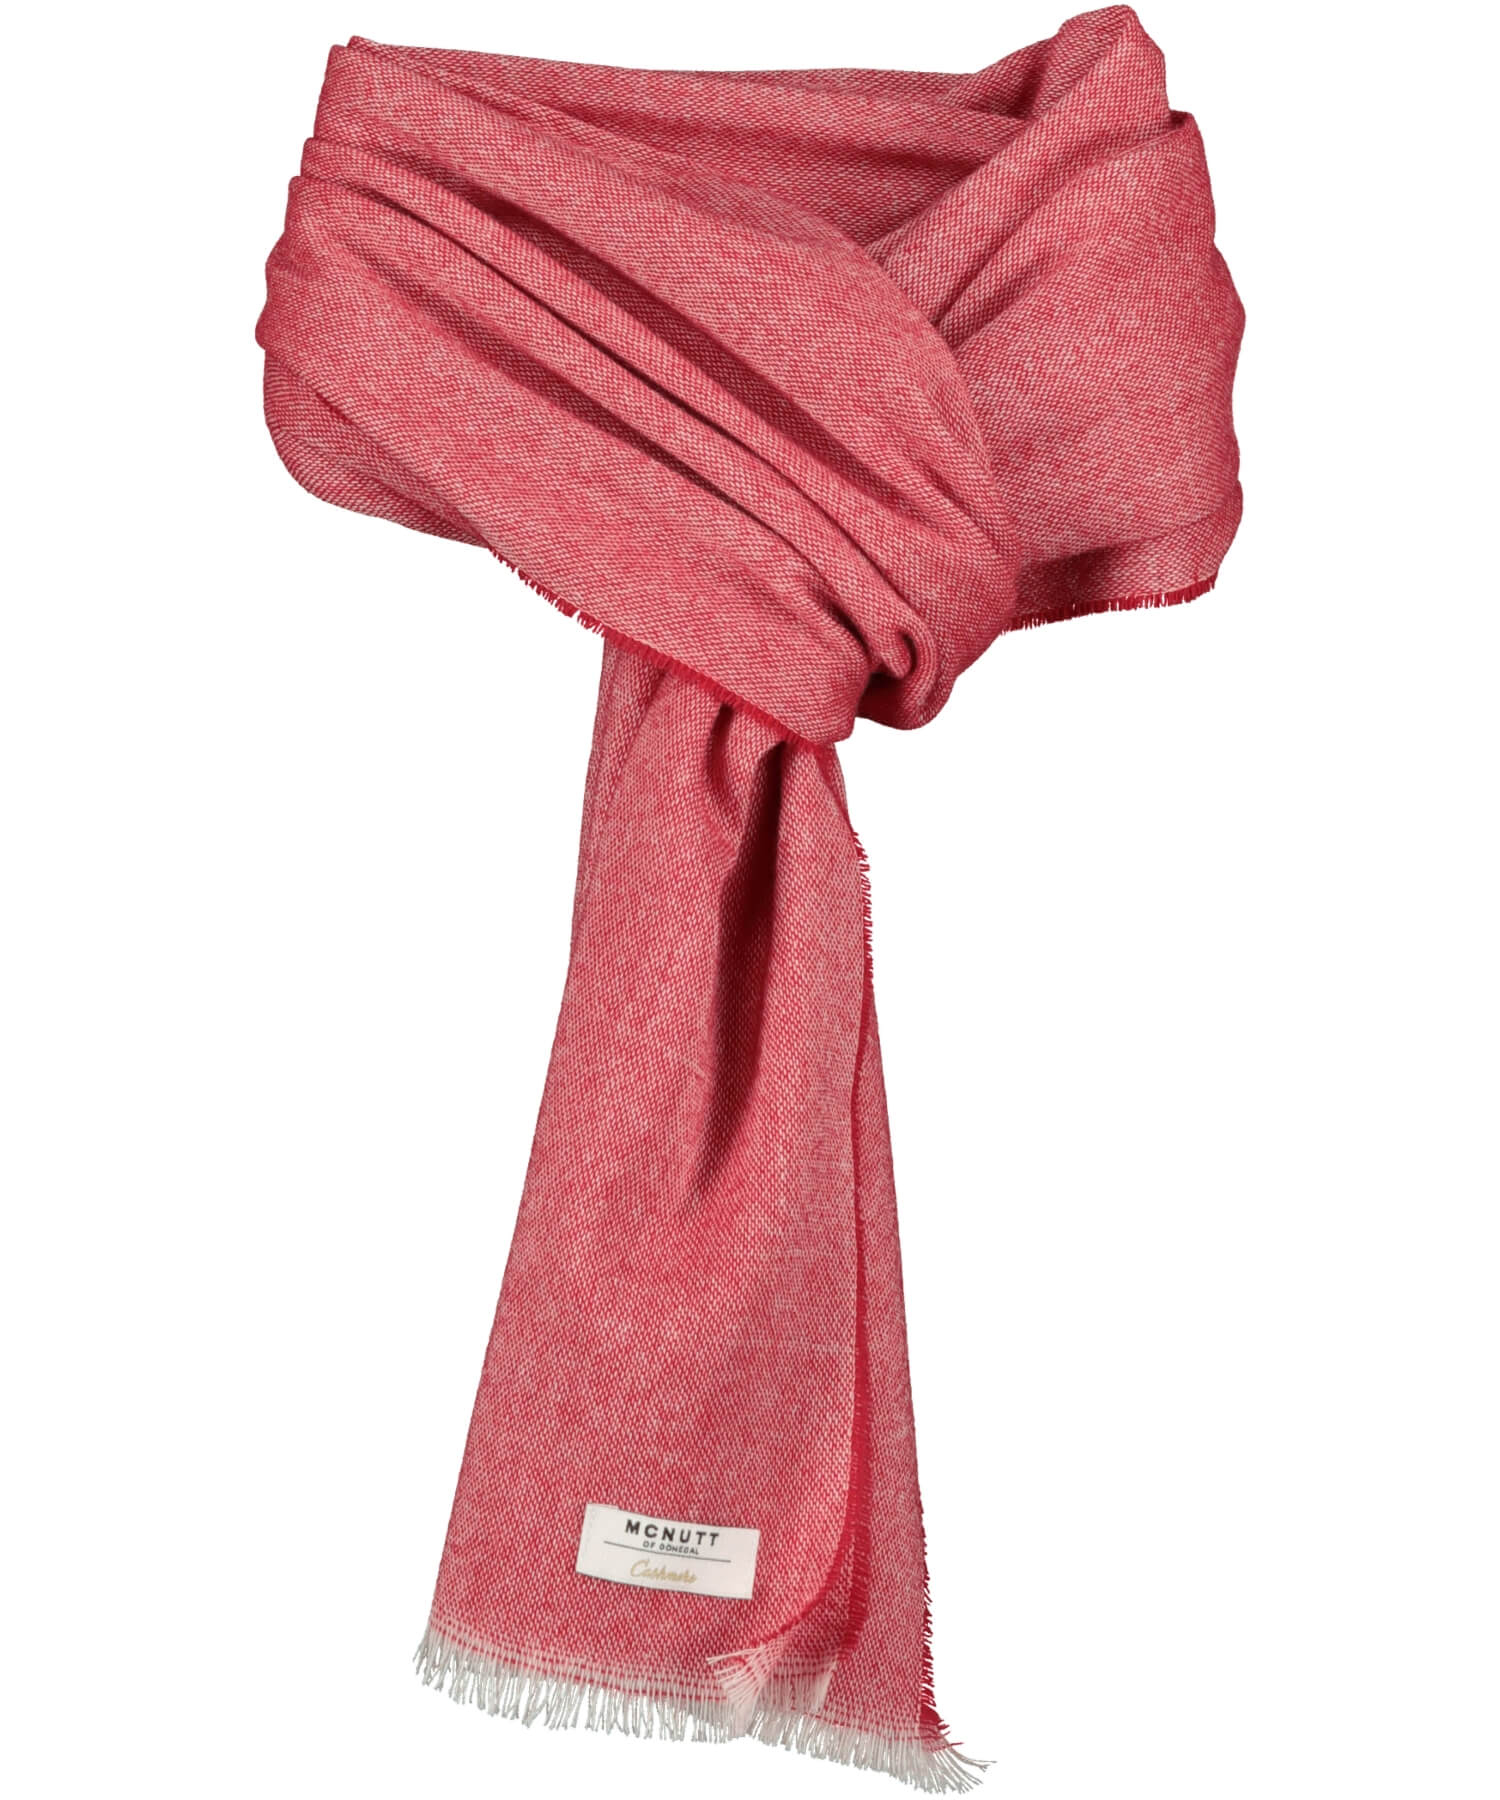 Paris Scarf - Fuchsia - [McNutts] - Ladies Scarves & Gloves - Irish Gifts